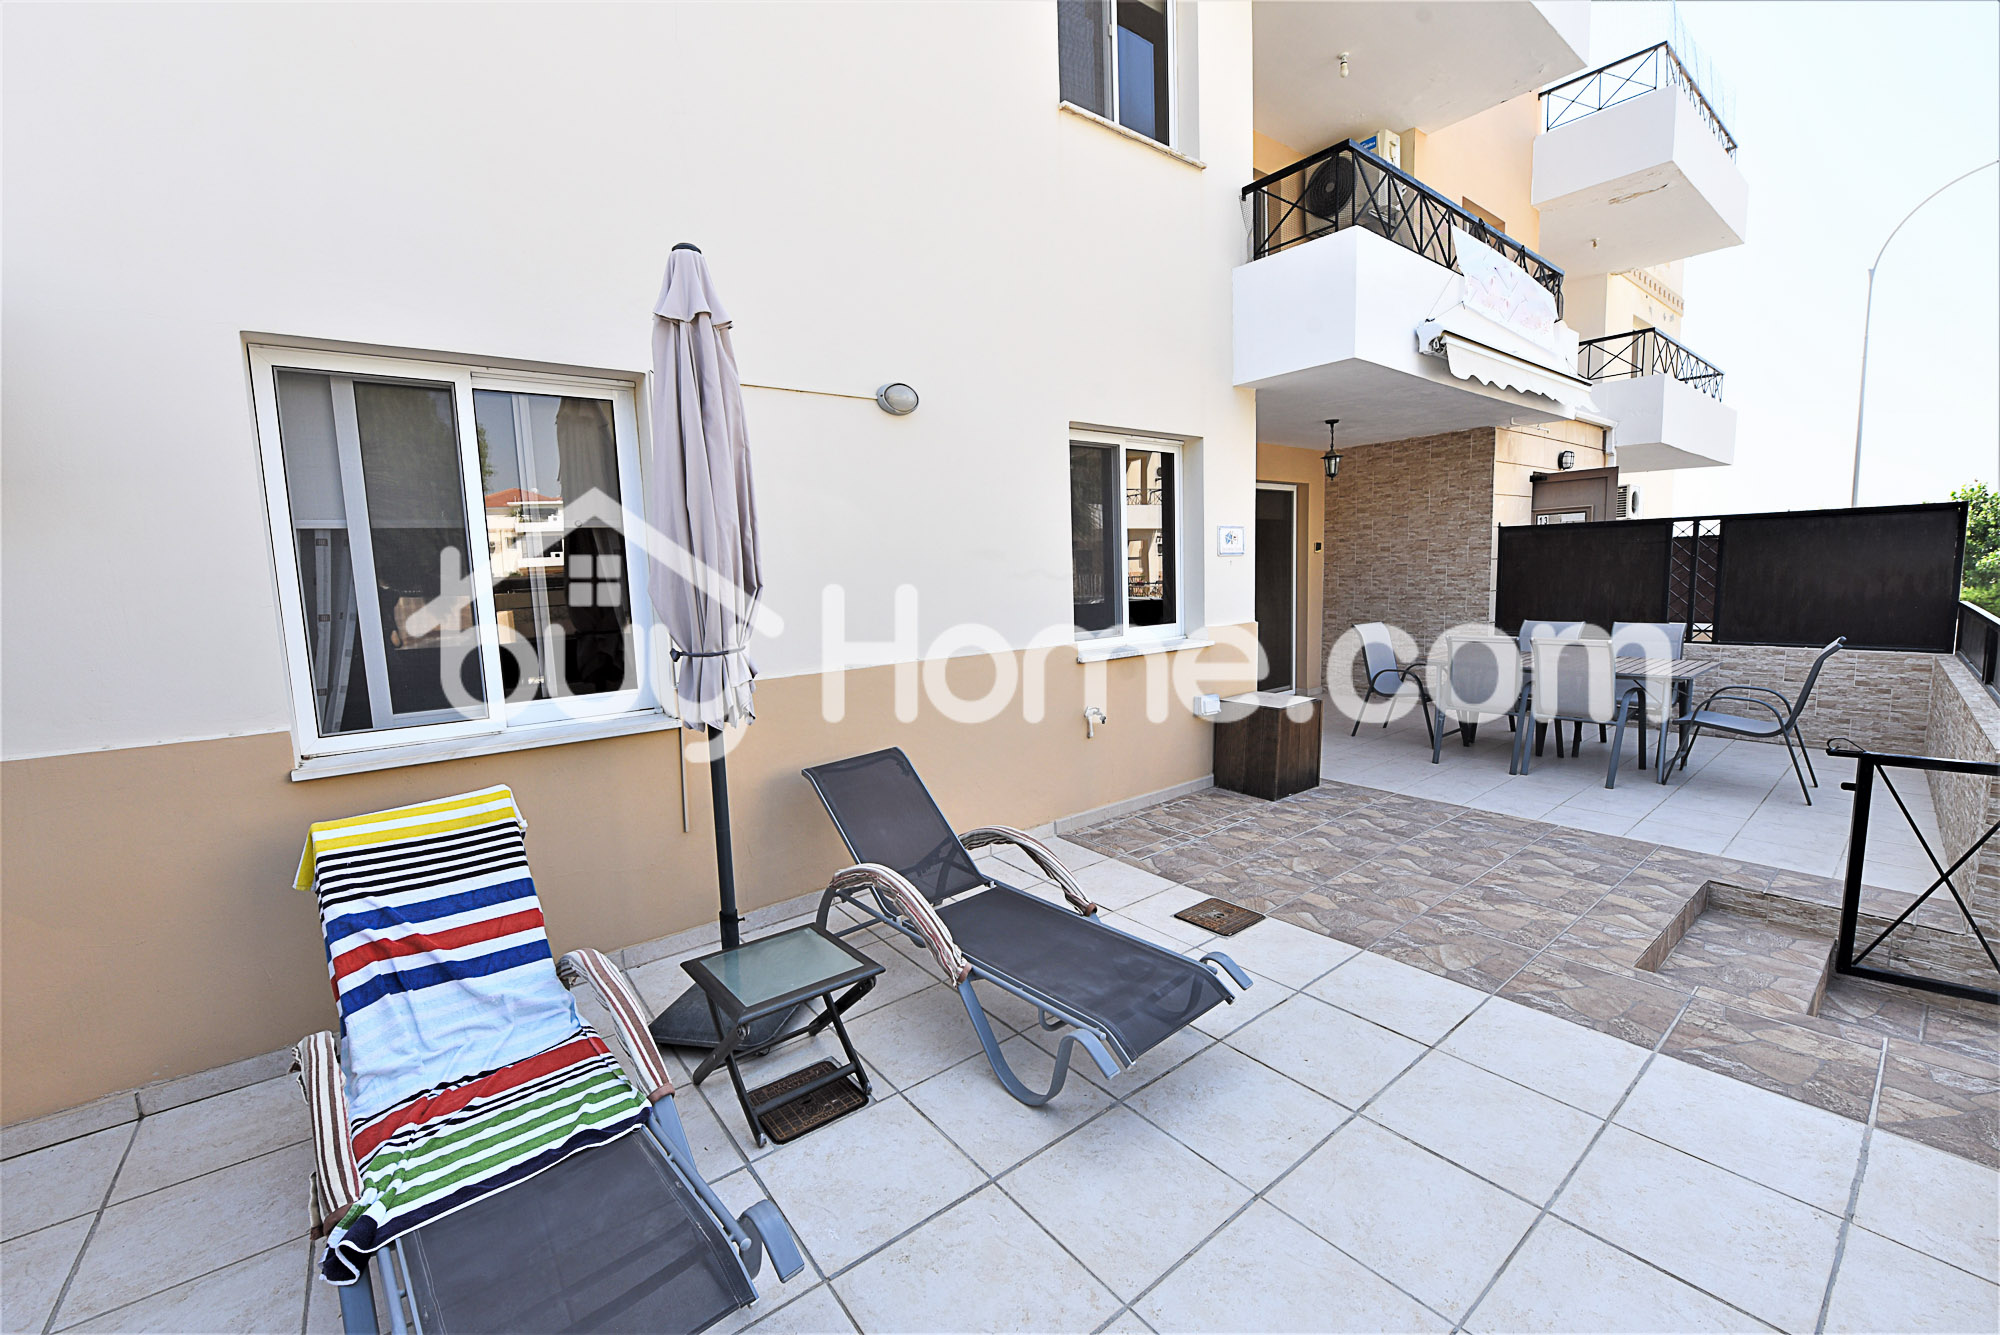 3 Bed Ground Floor Apartment | BuyHome